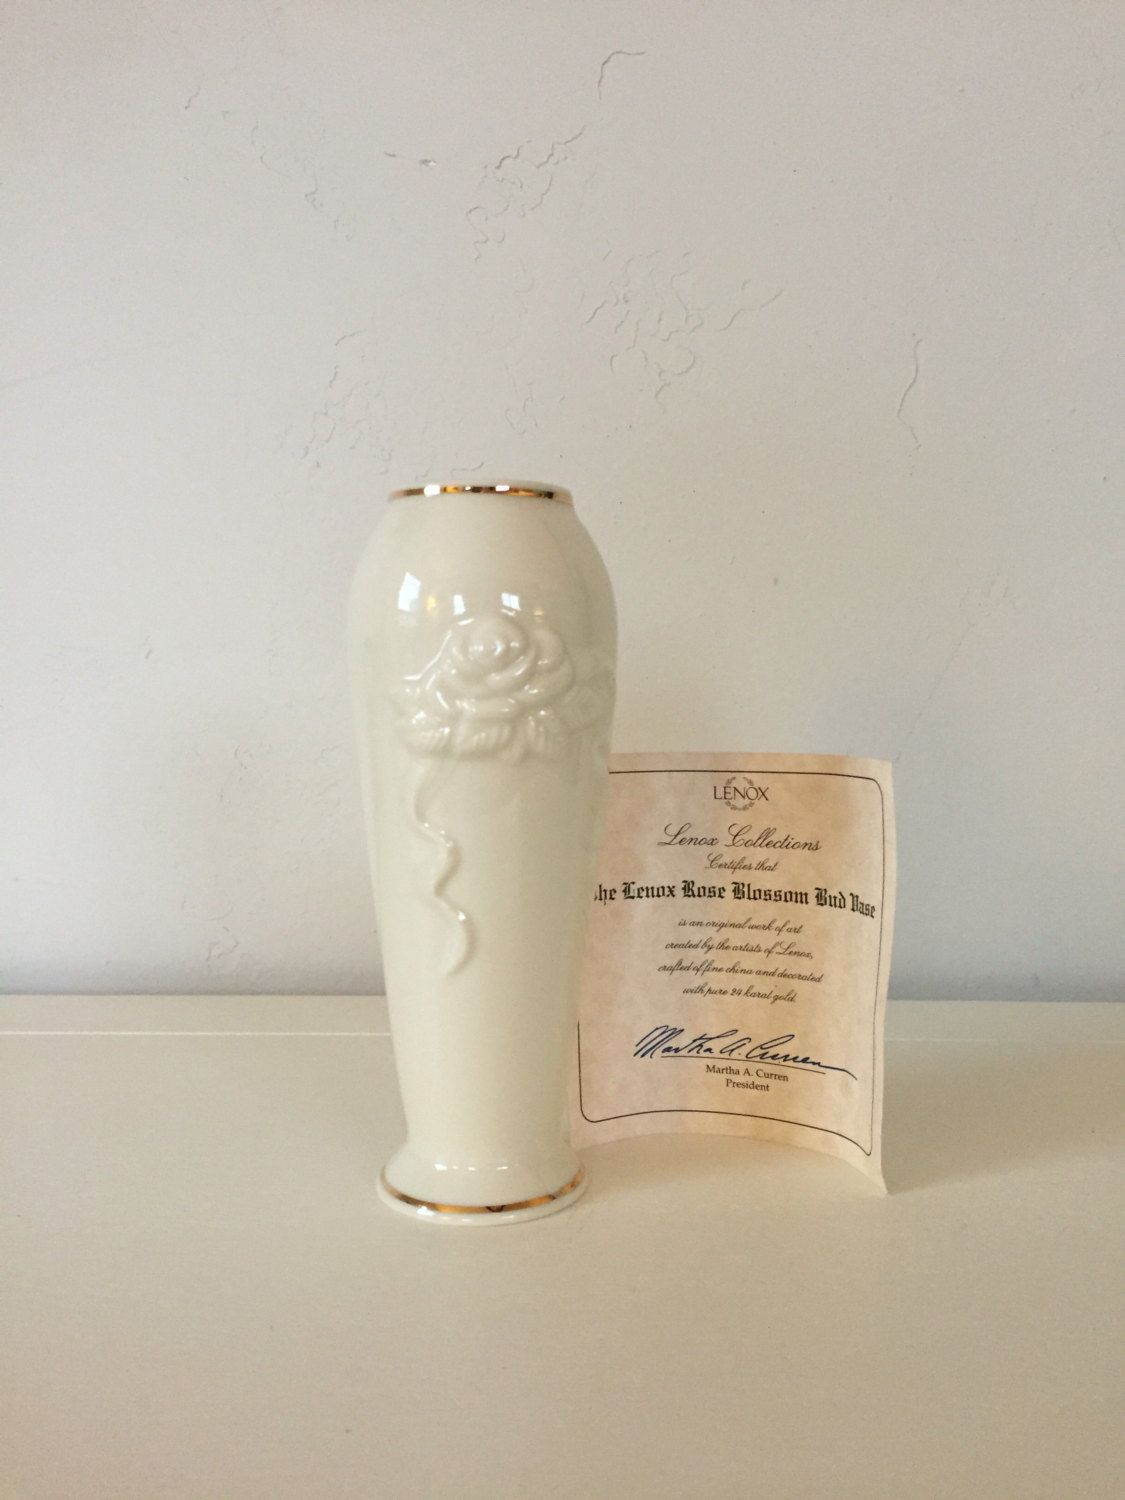 antique gold flower vase of lenox collections rose blossom bud vase with 24kt gold trim new in pertaining to lenox collections rose blossom bud vase with 24kt gold trim new in bag with certificate